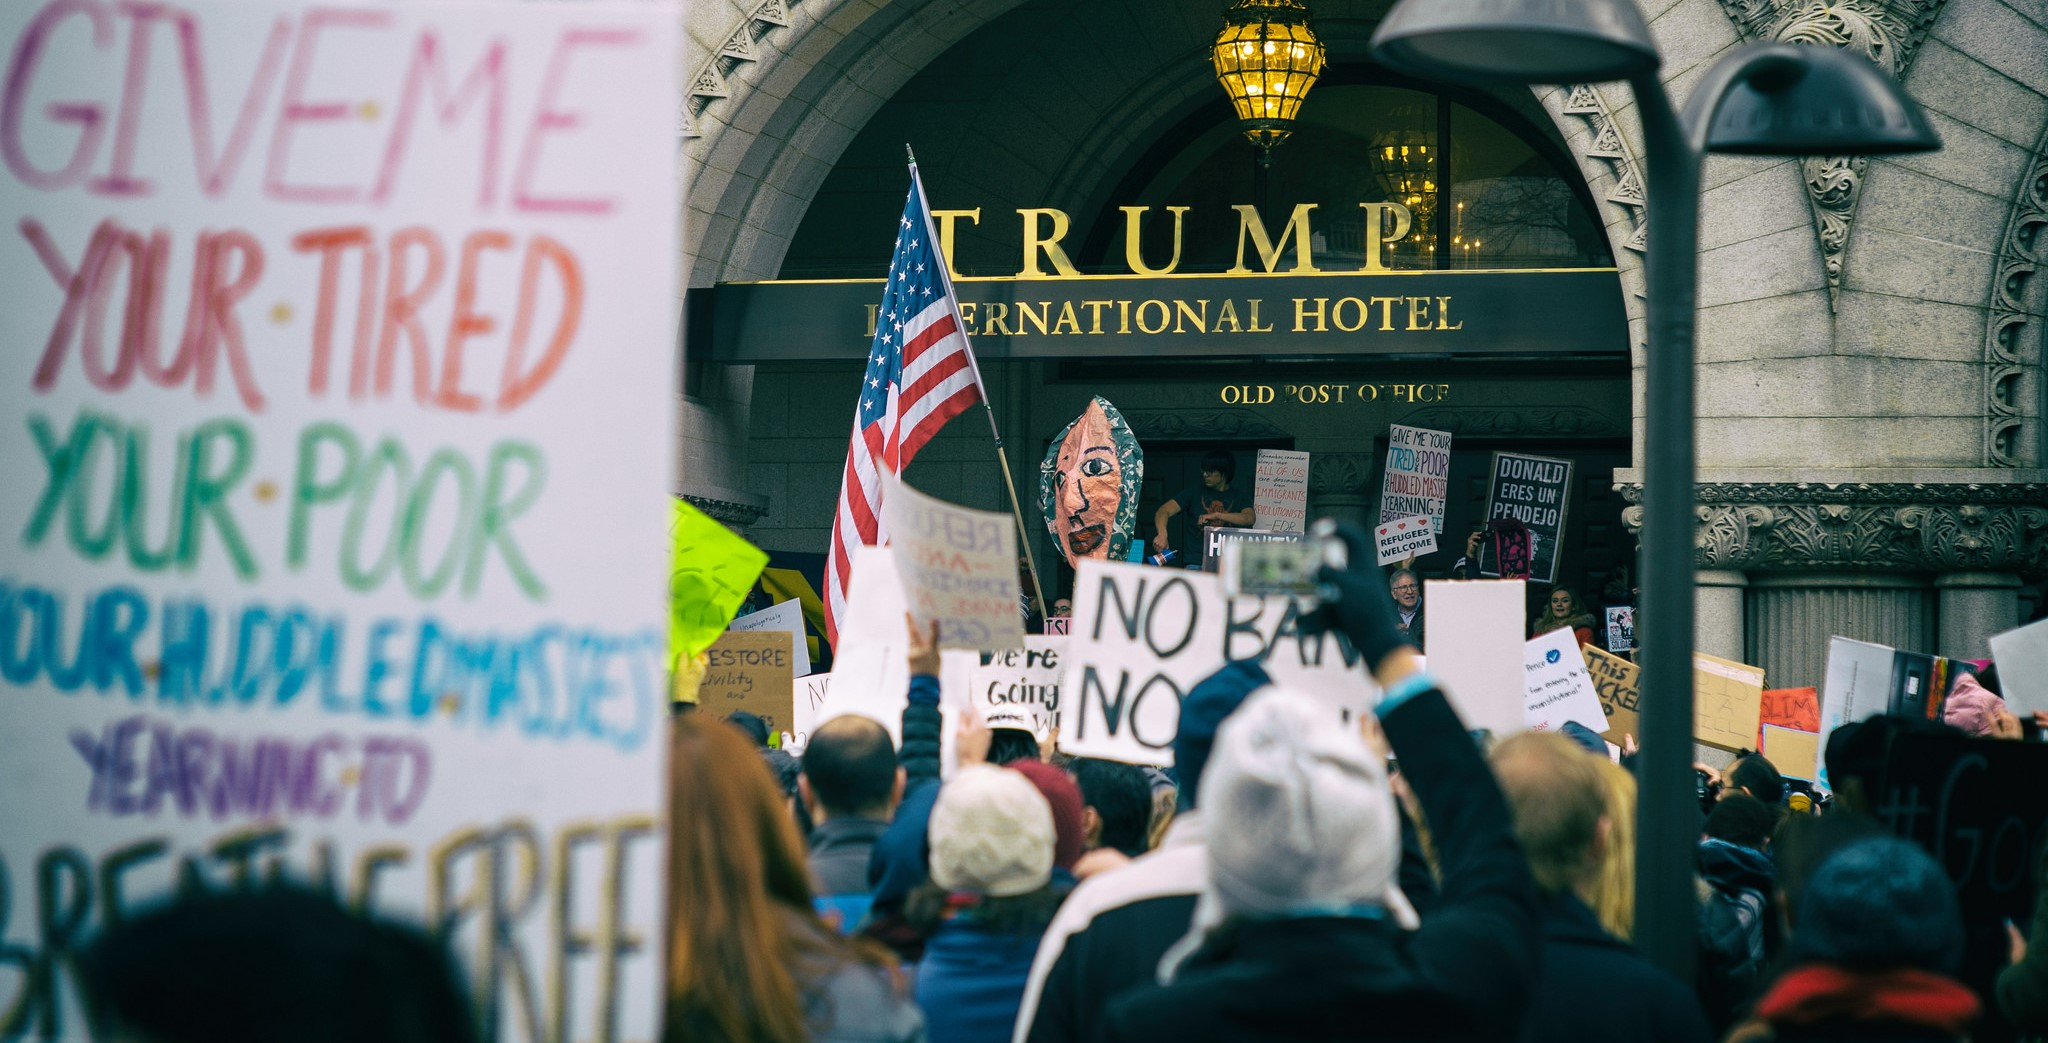 A protest aagainst the visa ban at Trump International Hotel in Washington, DC (Photo: Flickr/Mike Maguire)